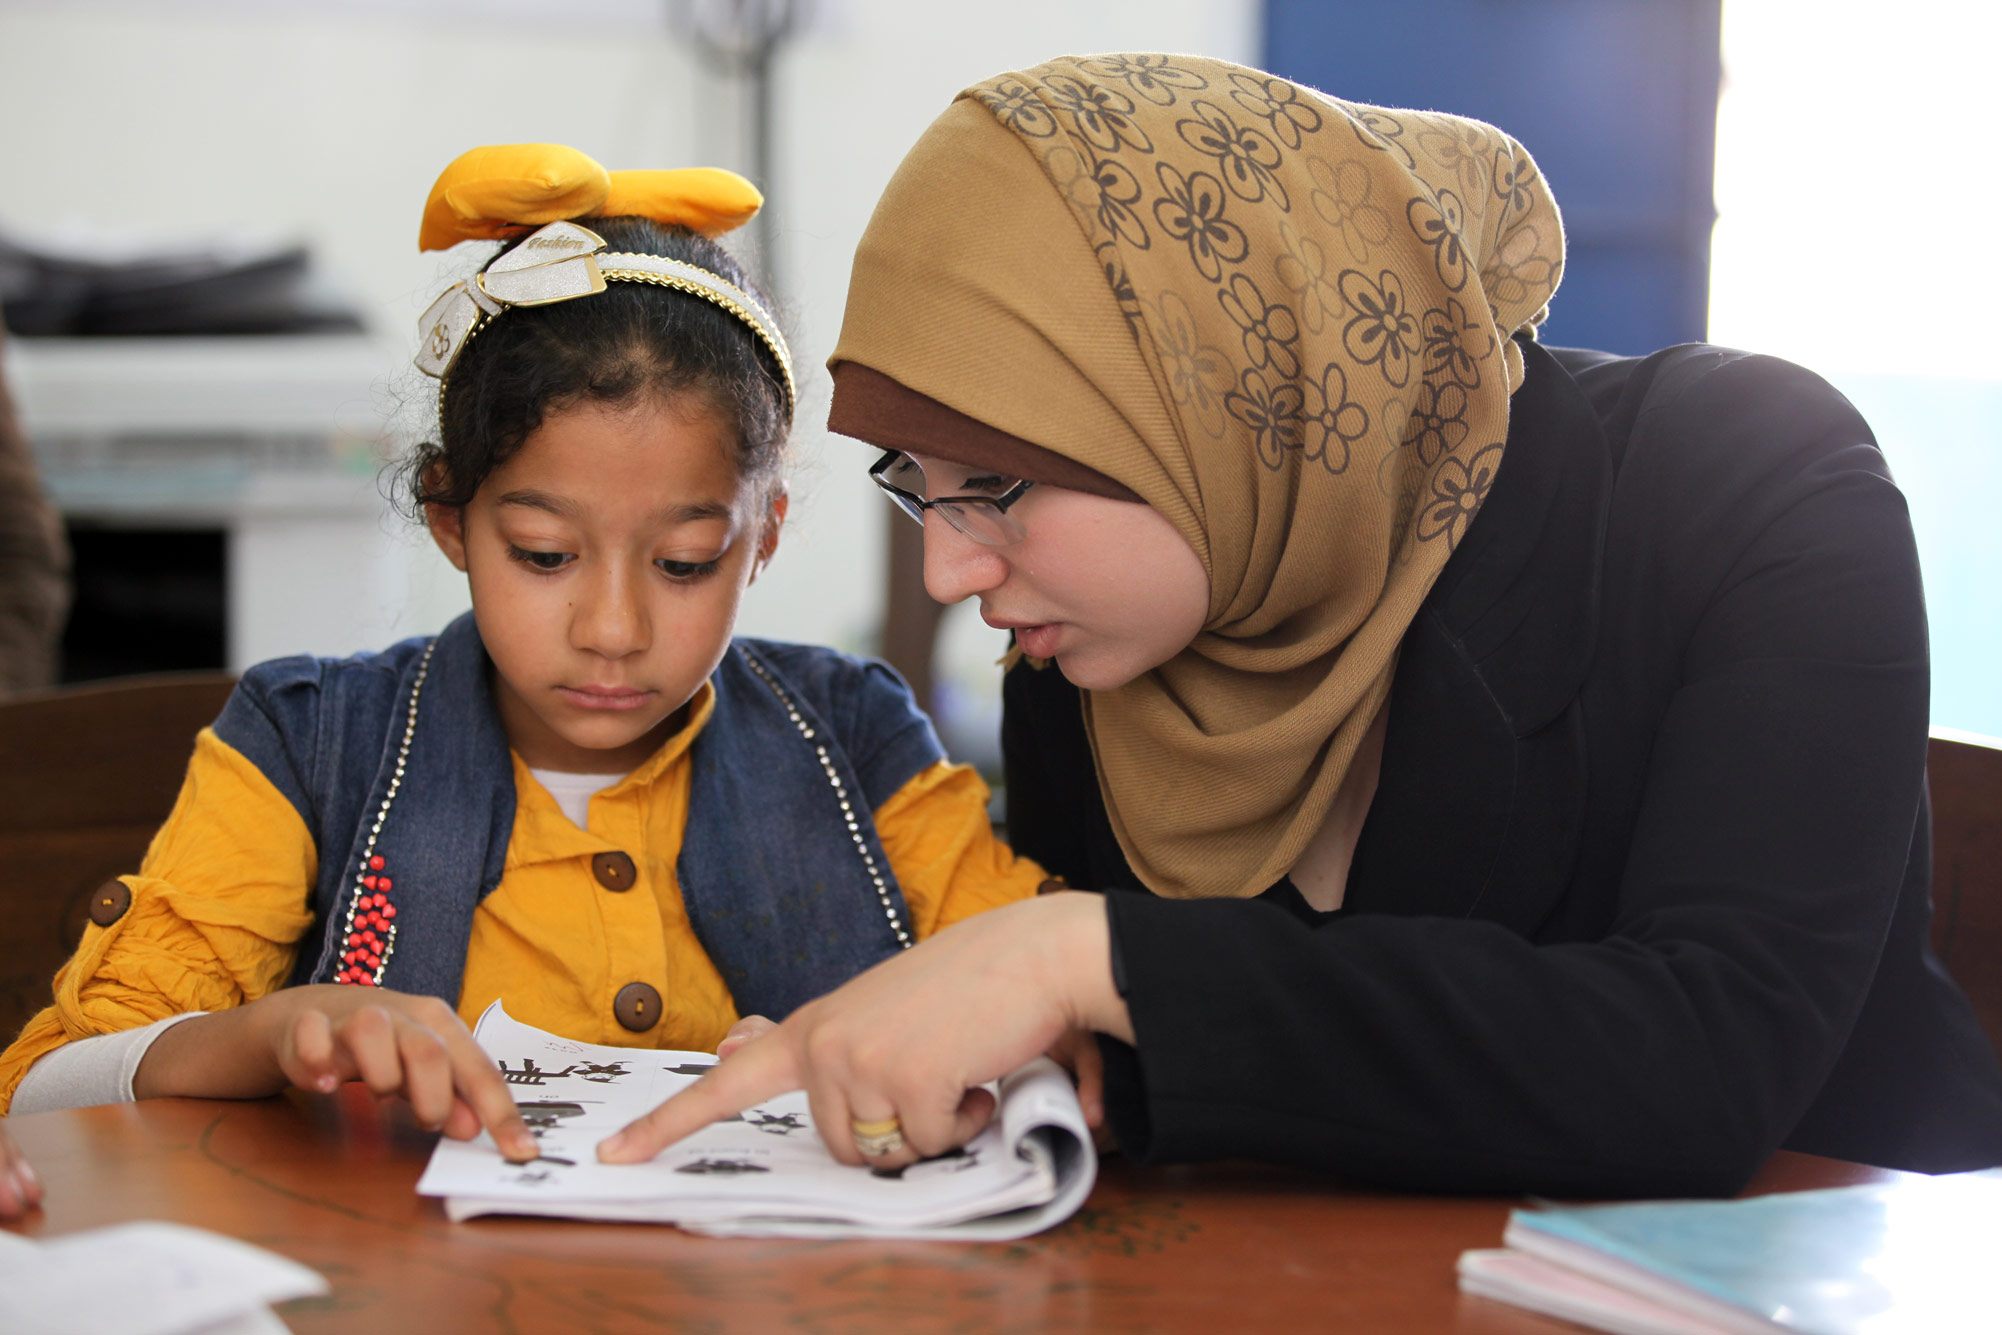 Seven-year-old Aya, originally from Jaramana camp in Damascus, was one of the thousands of Palestine refugee children who were excited to return to school in September 2015. Her story is just one example of the ongoing conflict's devastating impact on civilians in Syria, including Palestine refugees. In addition to physical injuries sustained as a result of the crisis, Palestine refugee children in Syria are suffering from psychological trauma caused by displacement, hardship and insecurity. UNRWA has trained 55 counsellors in Syria to provide psychosocial support to 45,000 students who attend UNRWA schools. © 2015 UNRWA Photo by Taghrid Mohamm